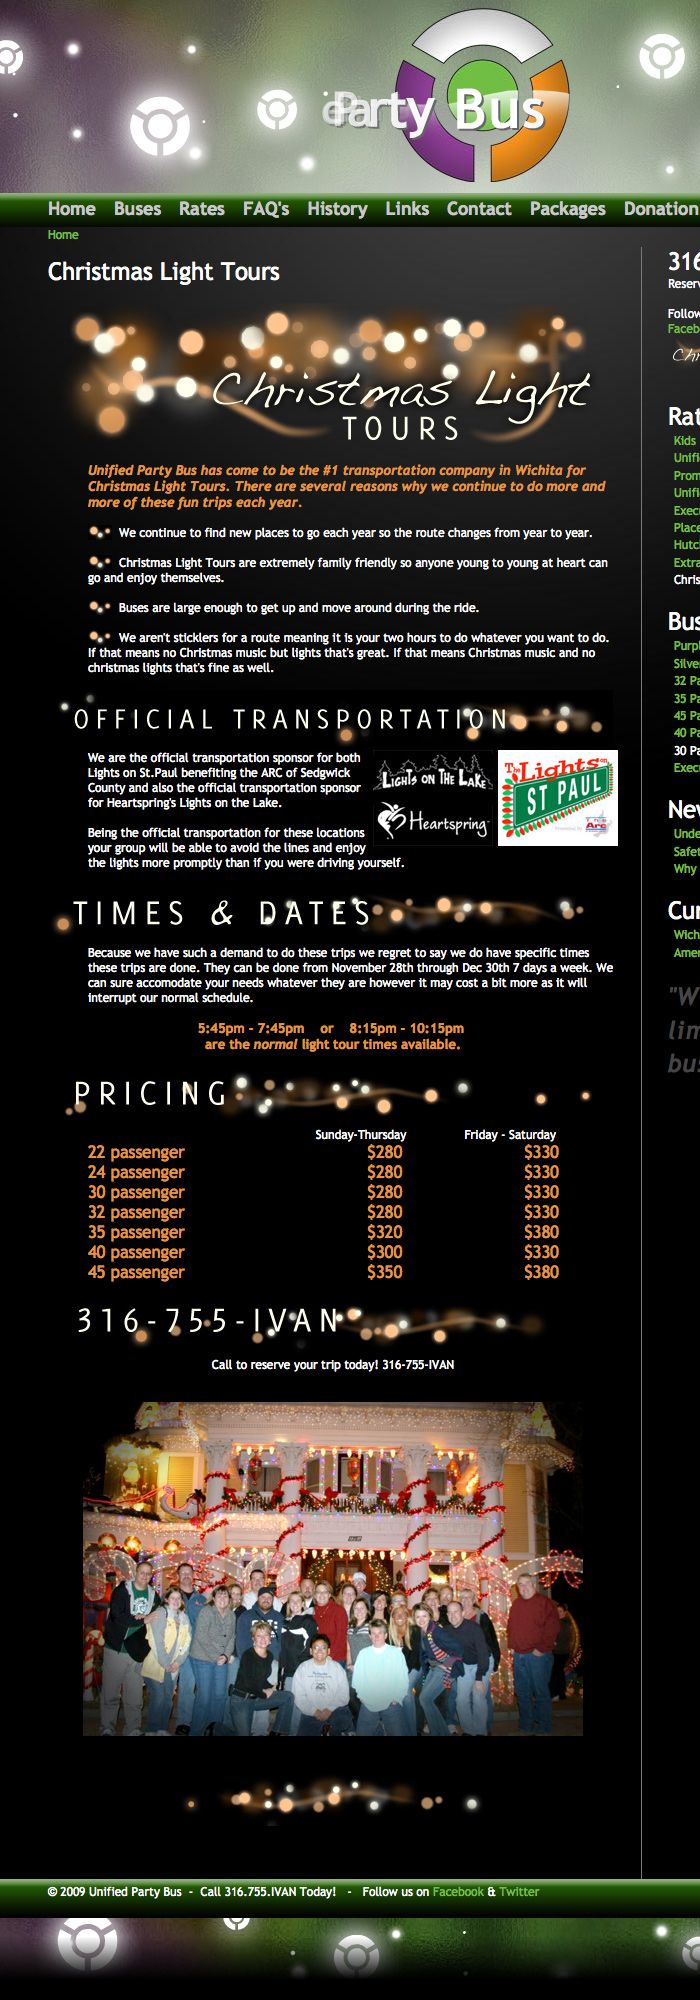 Unified Party Bus - Christmas Light Tour Webpage